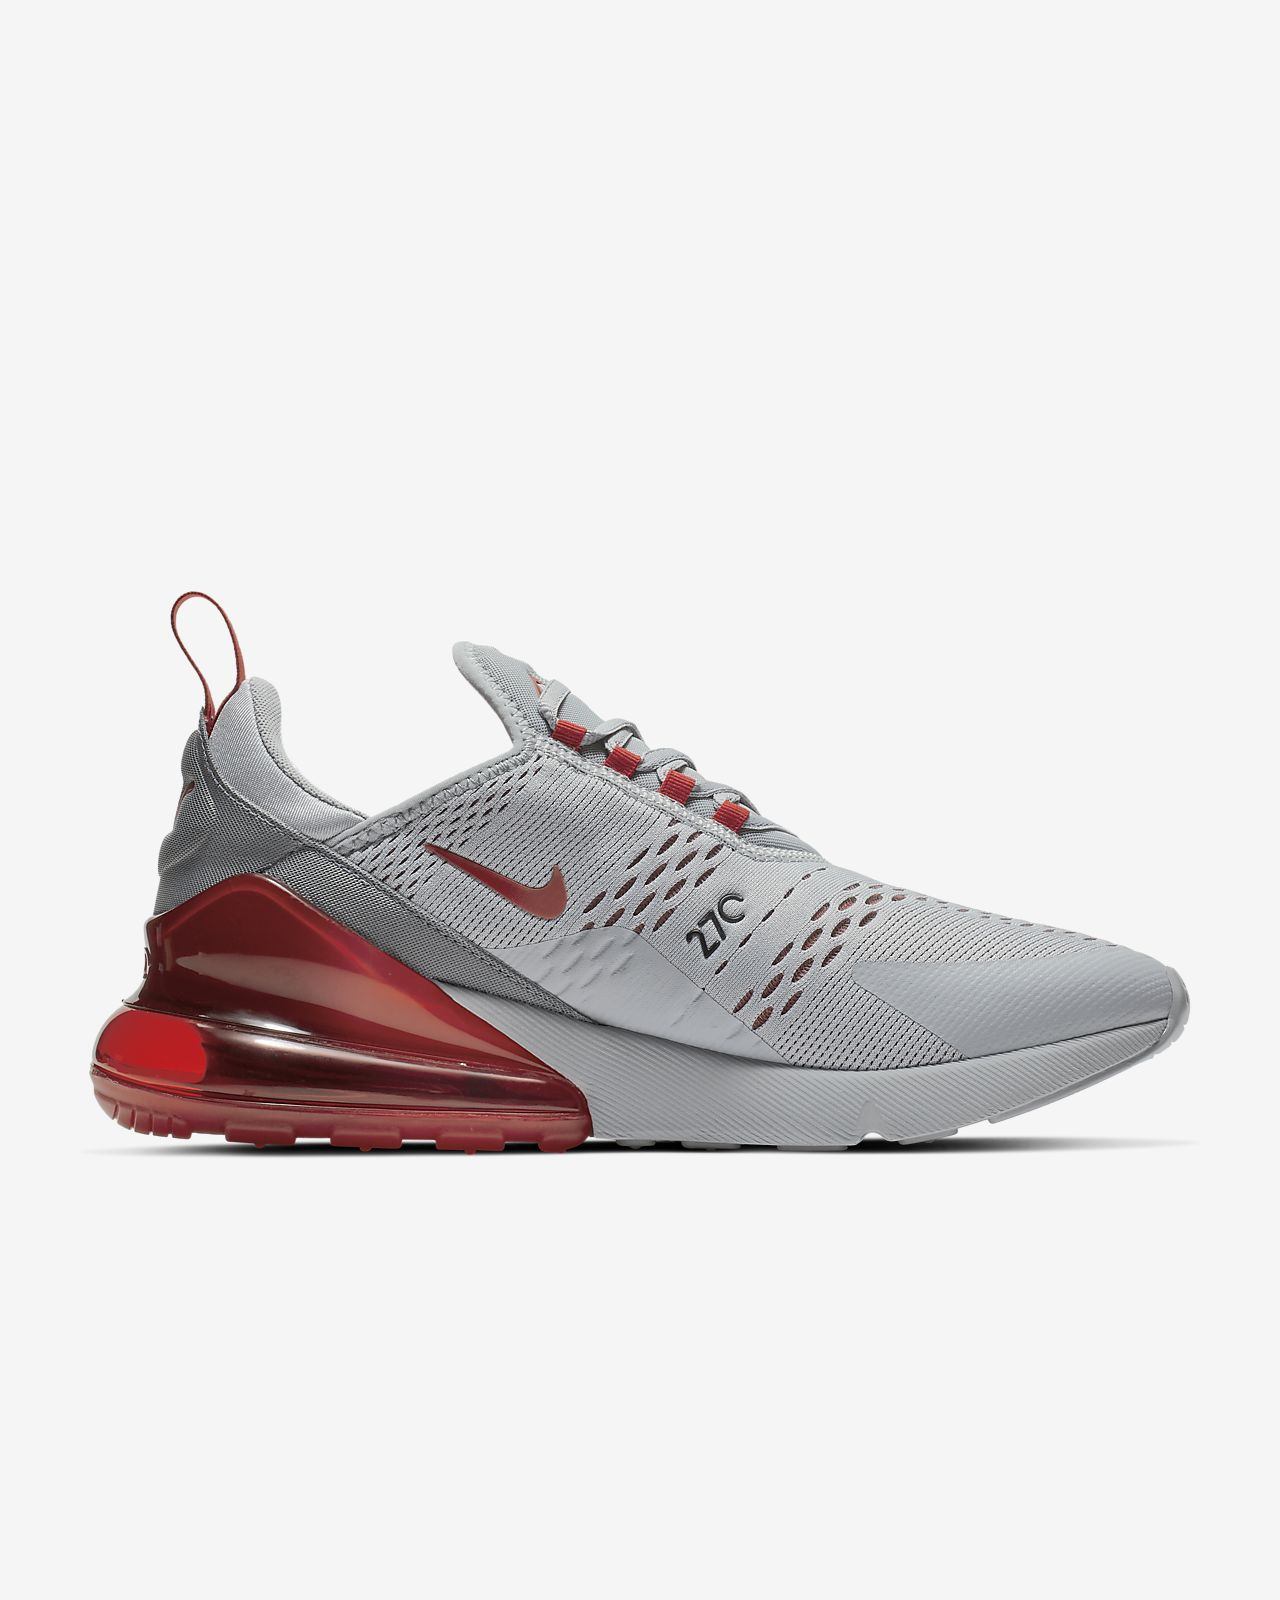 lowest price aee6c 06384 ... Nike Air Max 270 Men s Shoe